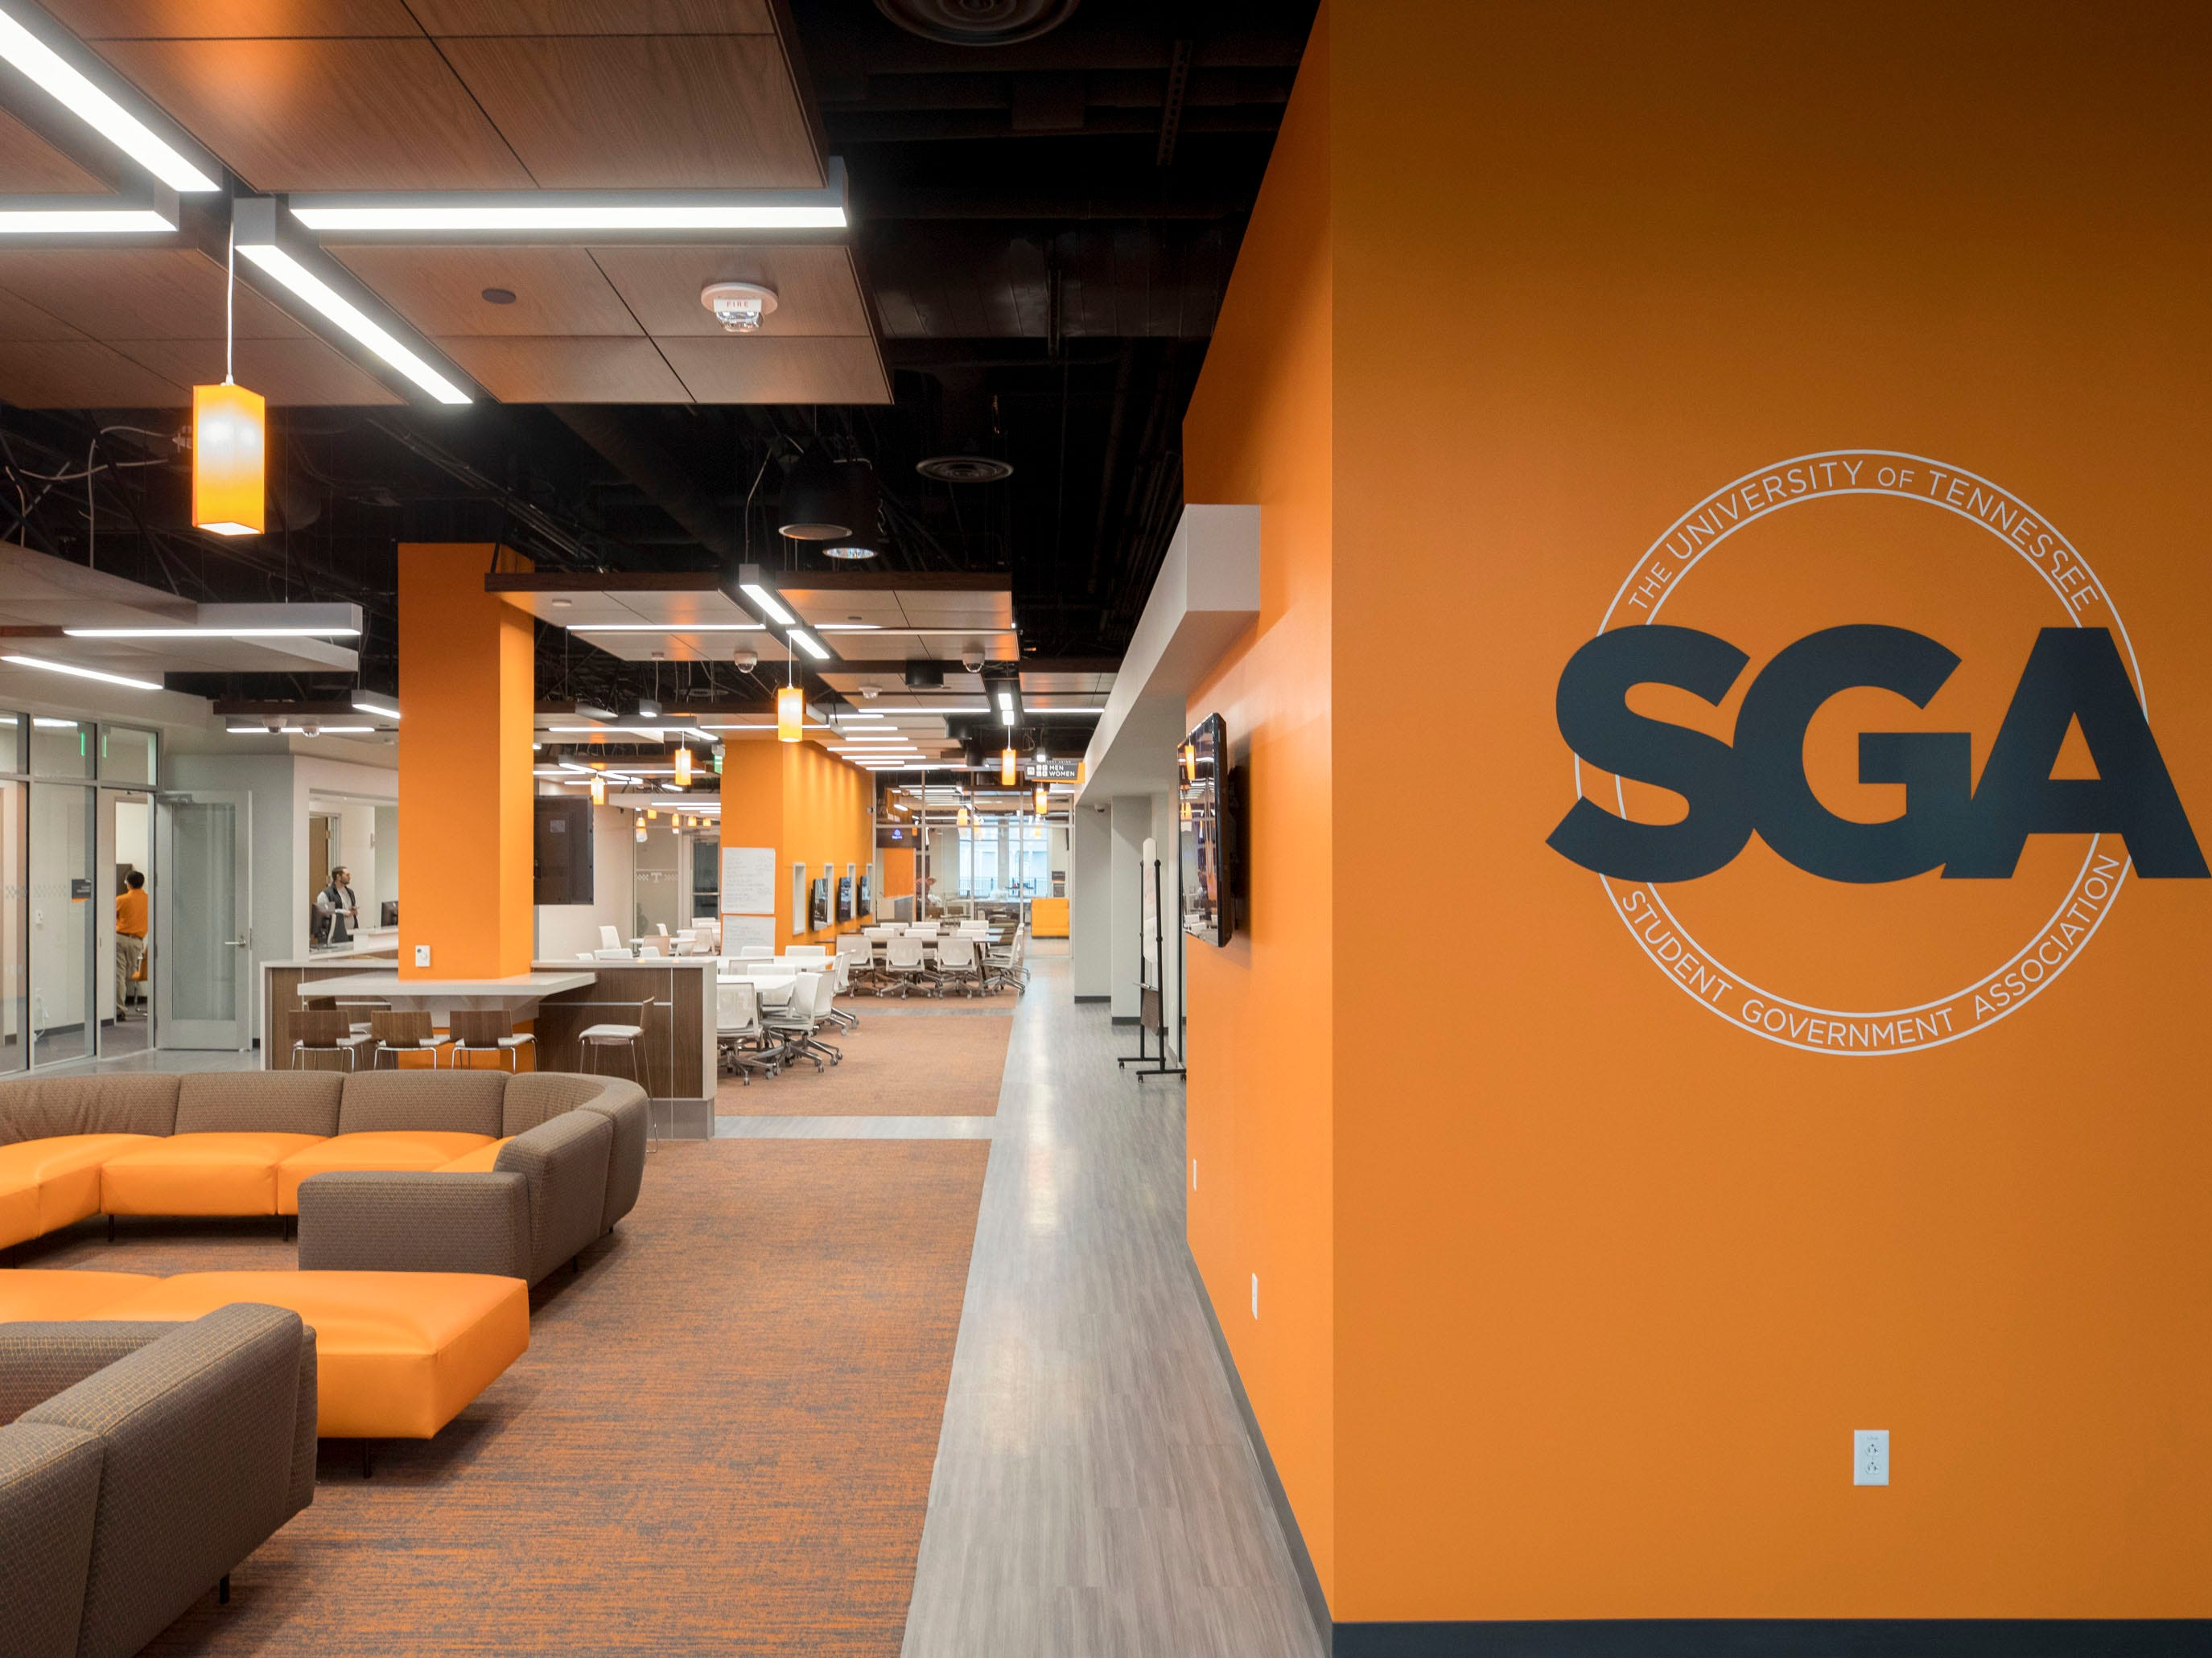 The office suites for the Student Government Association at University of Tennessee's Student Union.